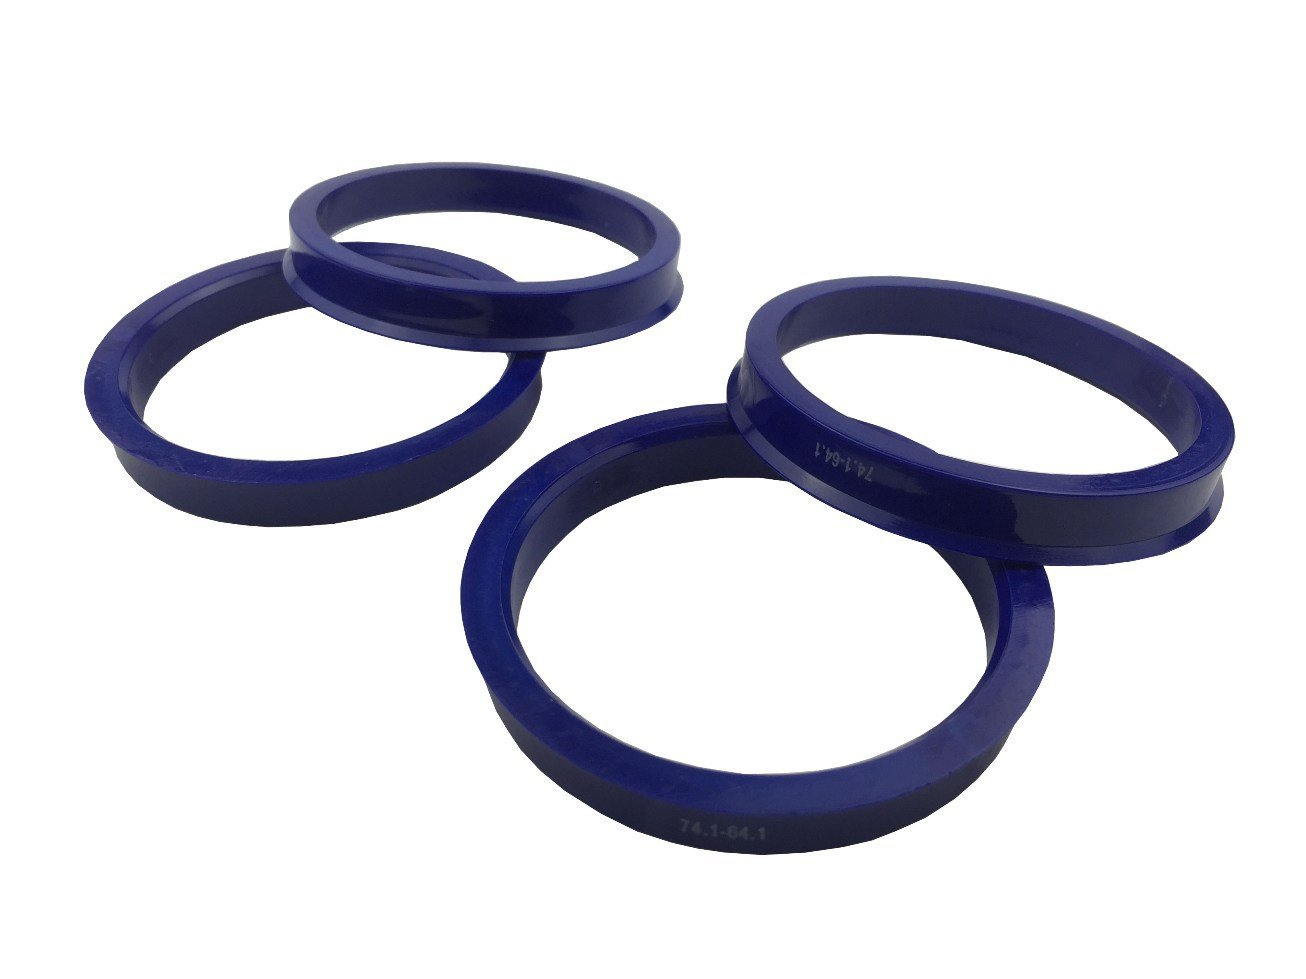 4 Pieces - Hub Centric Rings - 74.1mm OD to 64.1mm ID - Dark Blue Poly Carbon Hub Rings JianDa